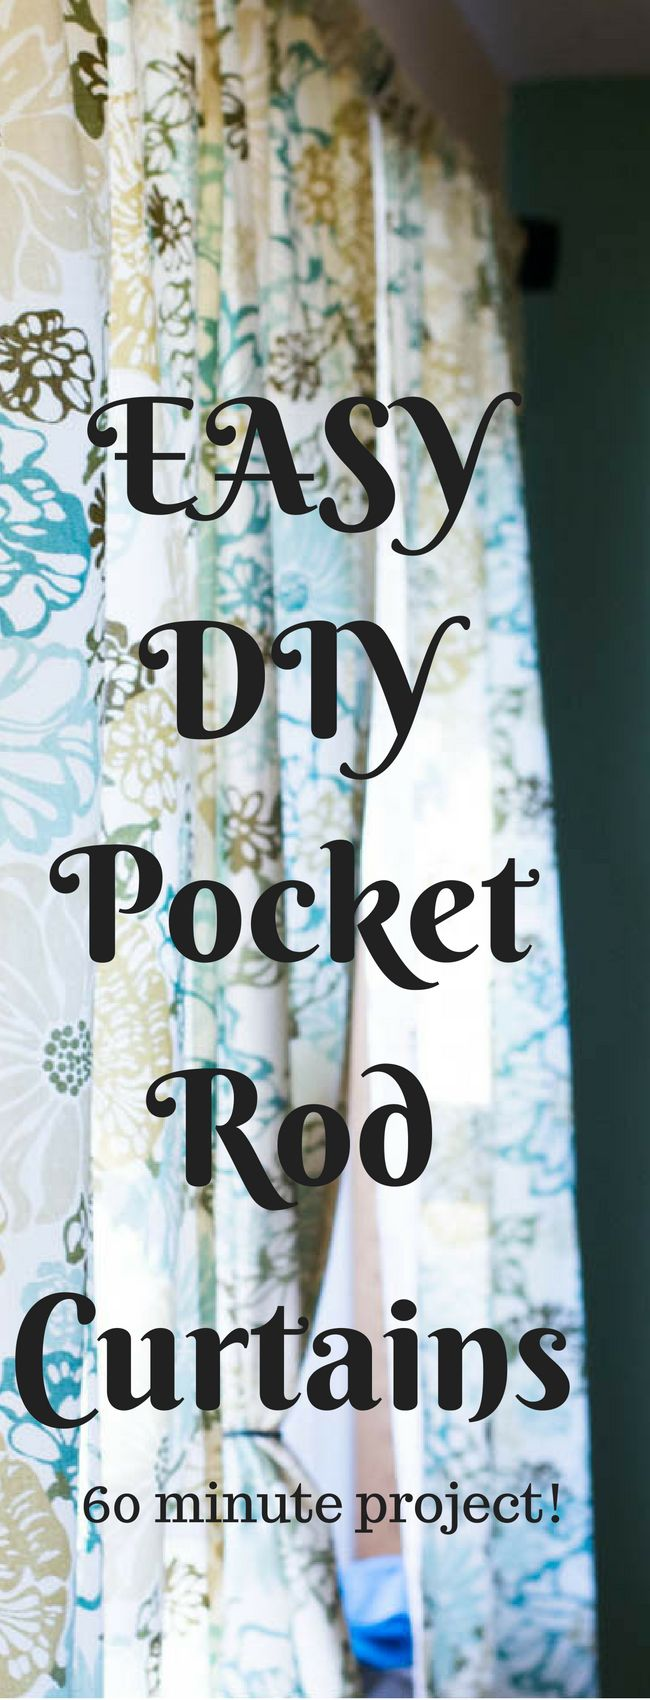 It doesn't have to be hard to make your own curtains - here is an easy DIY curtains tutorial (this is specifically for rod curtains). It can be an affordable option for updating the look of any room!